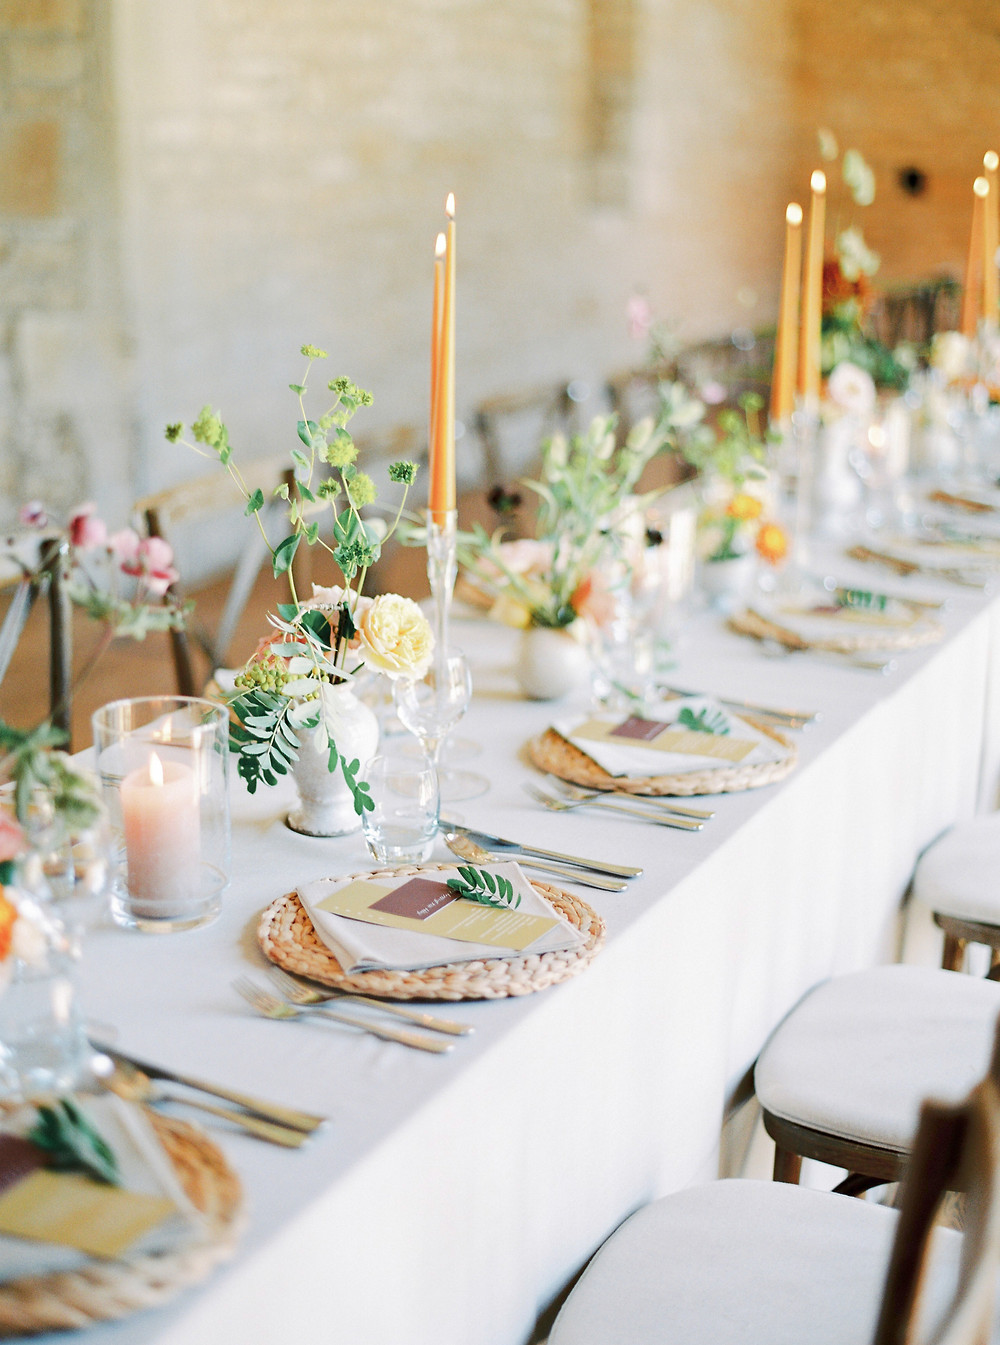 STUDIO SORORES: COTSWOLDS WEDDING PLANNER & FLORIST